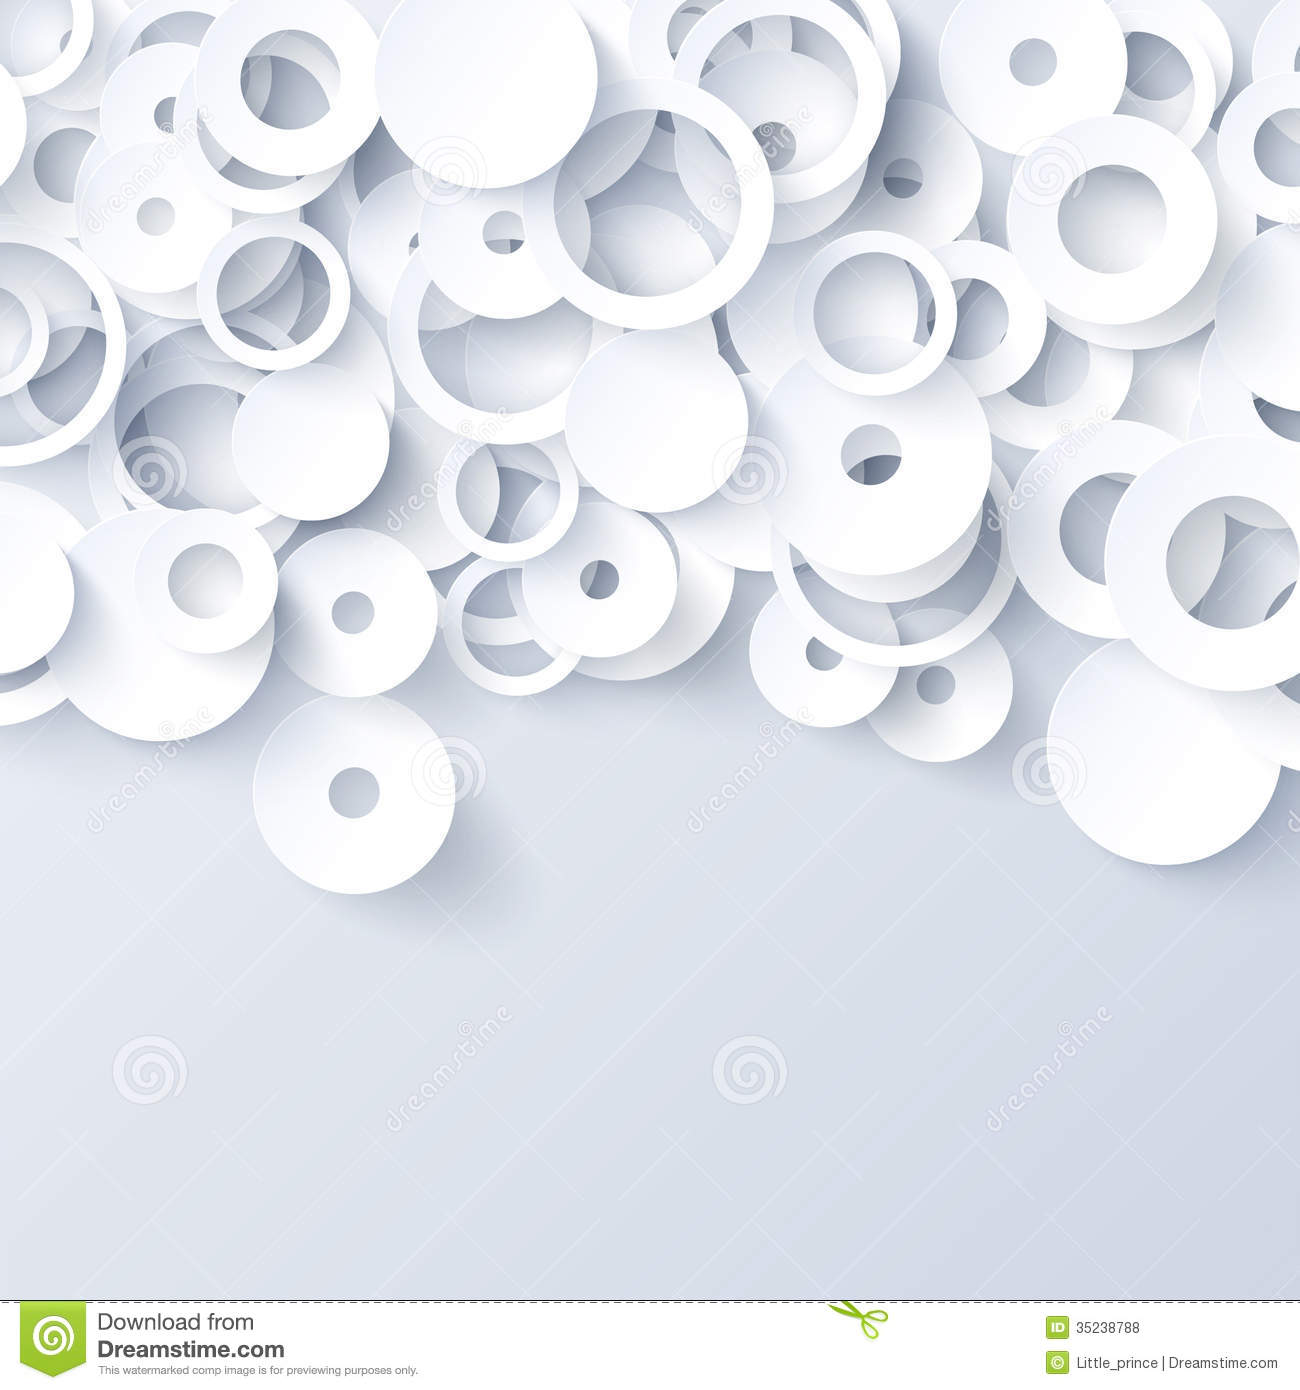 White and gray 3d paper abstract background stock vector for 3d paper wallpaper